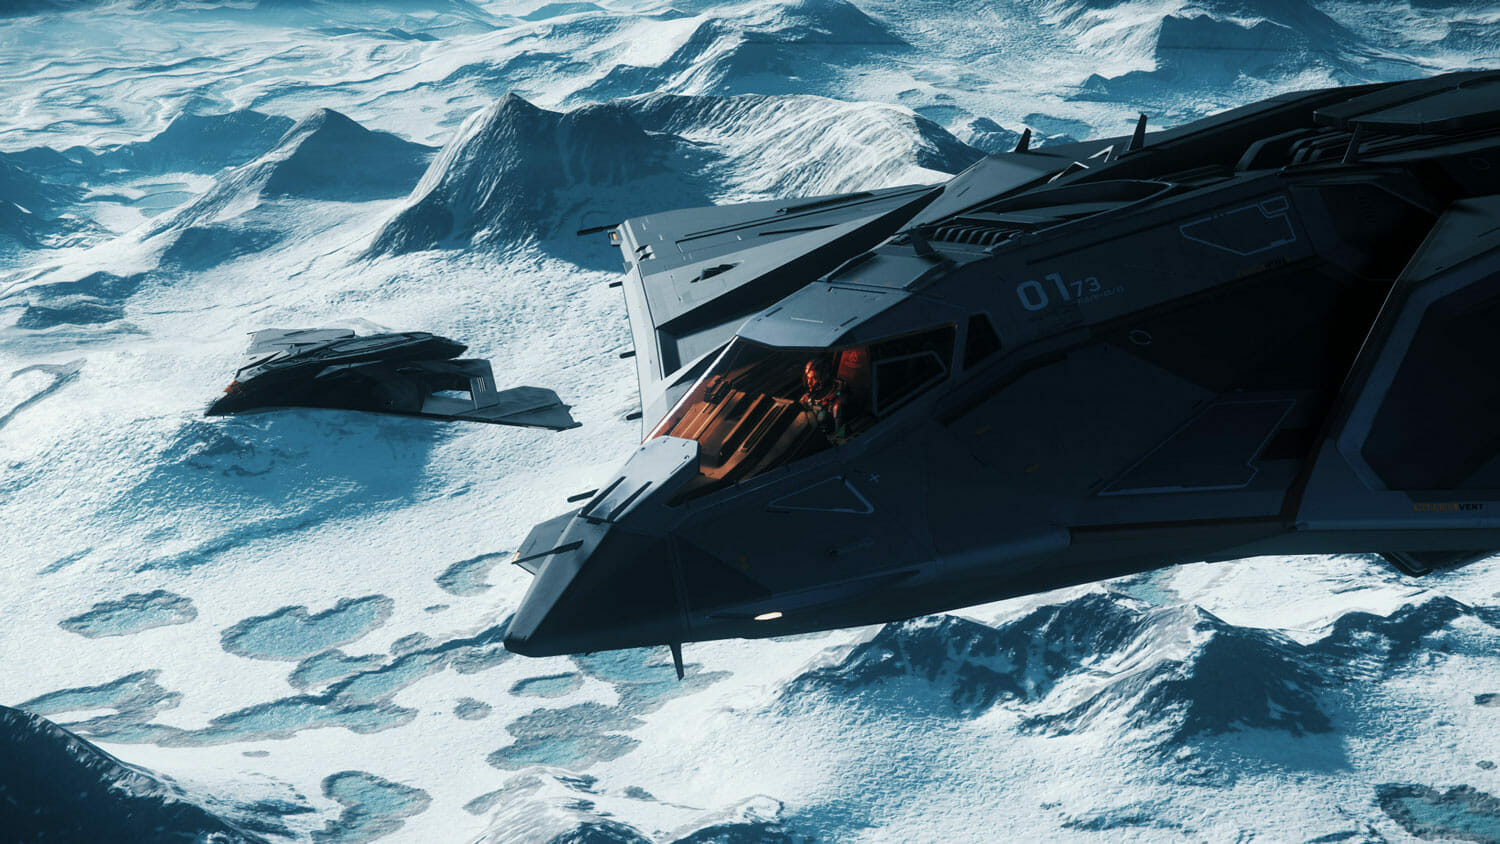 3.2 - An-Eclipse-New-To-32-A-Stealth-Bomber-Over-Yela-Moon_preview.jpg